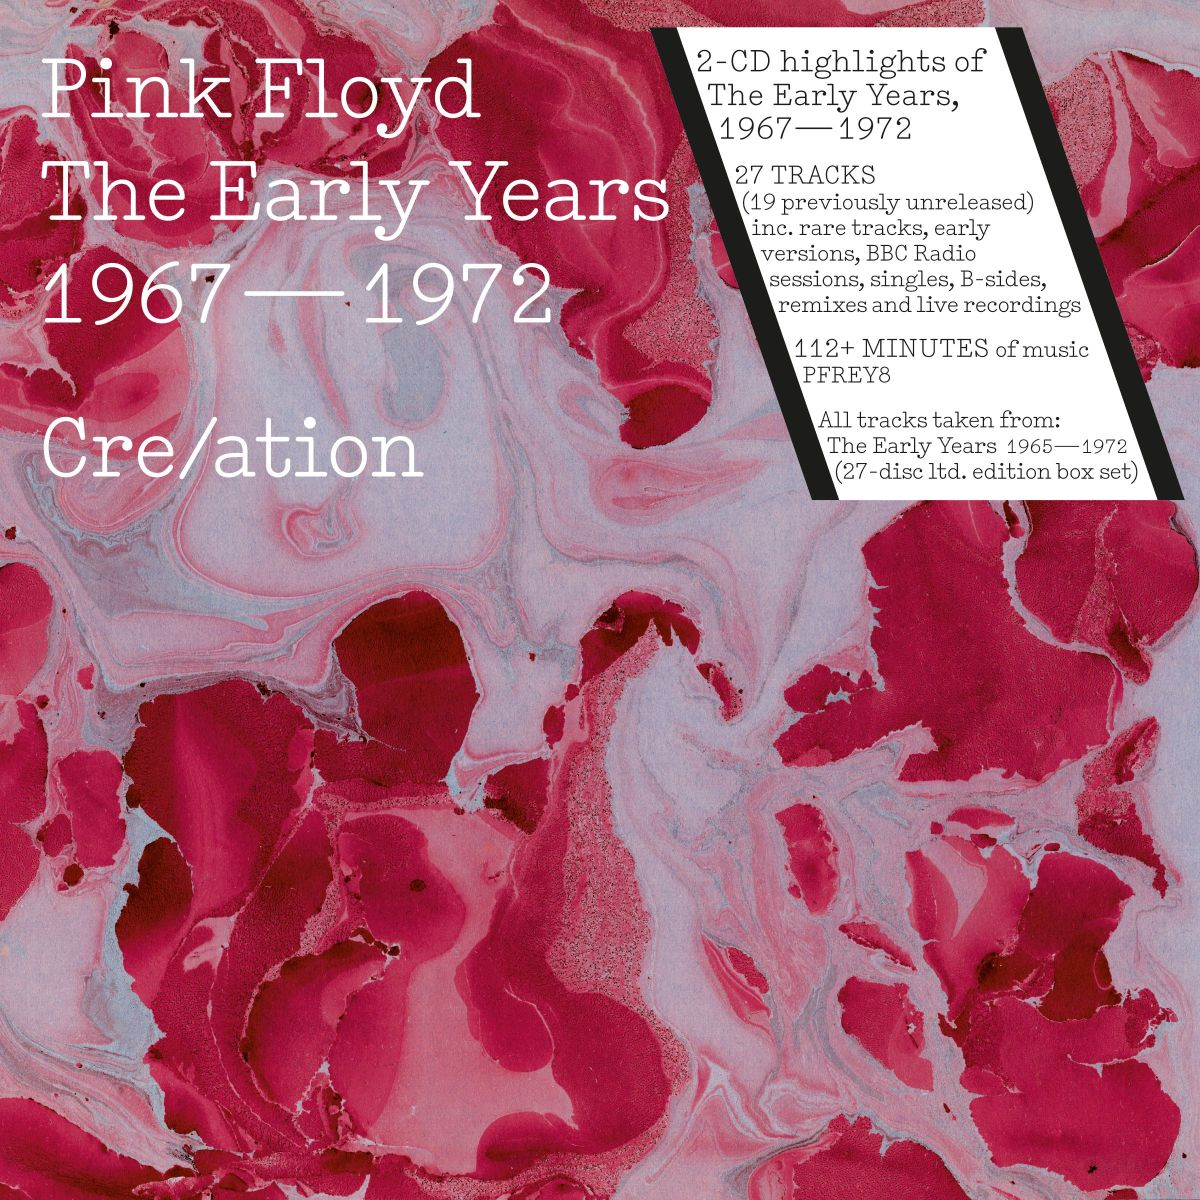 Pink Floyd - The Early Years 1965-1972: the ultimate